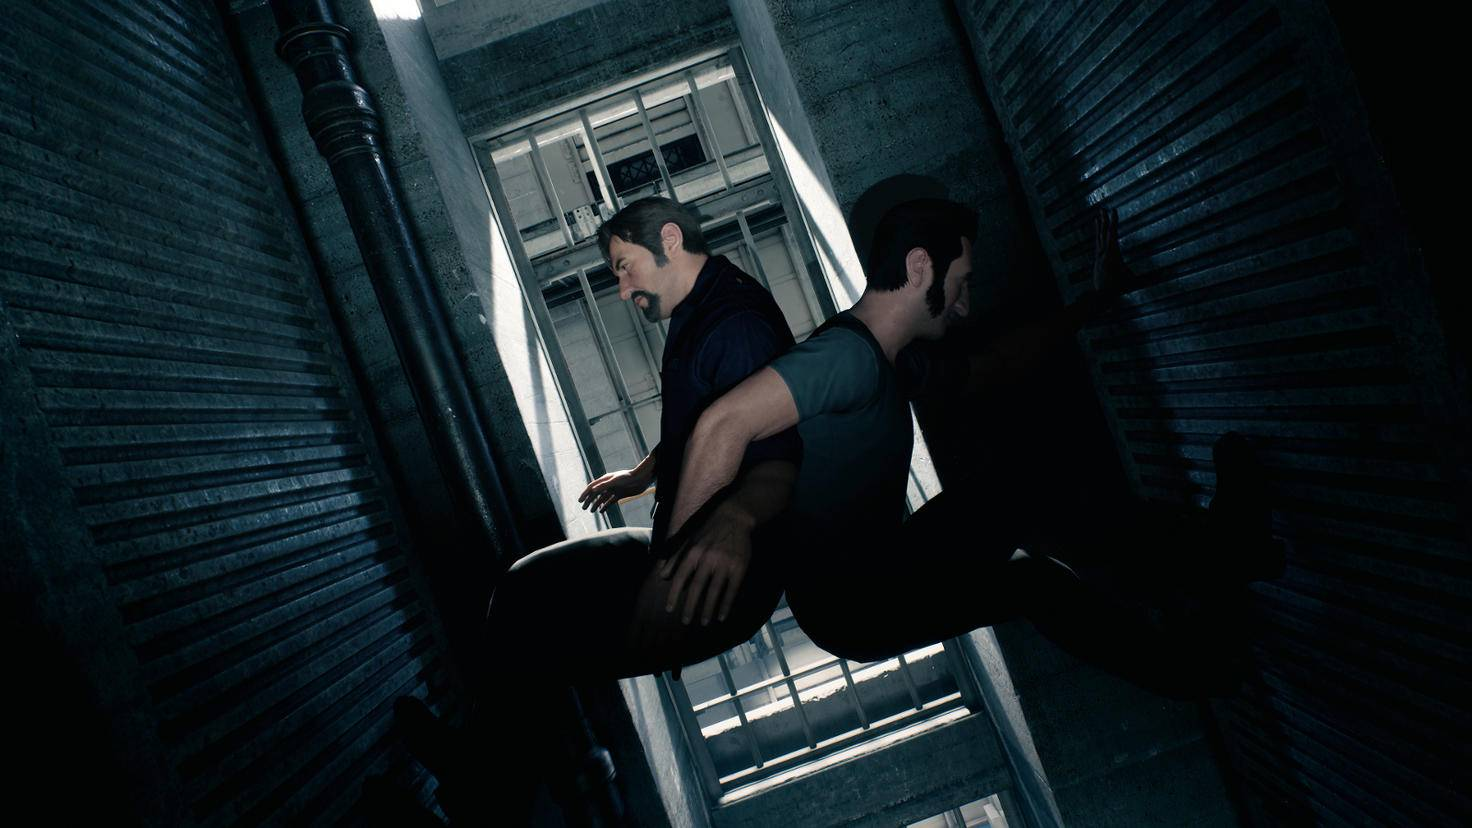 """A Way Out"" steht als Koop-Game mit interessanter Grundidee in den Startlöchern."